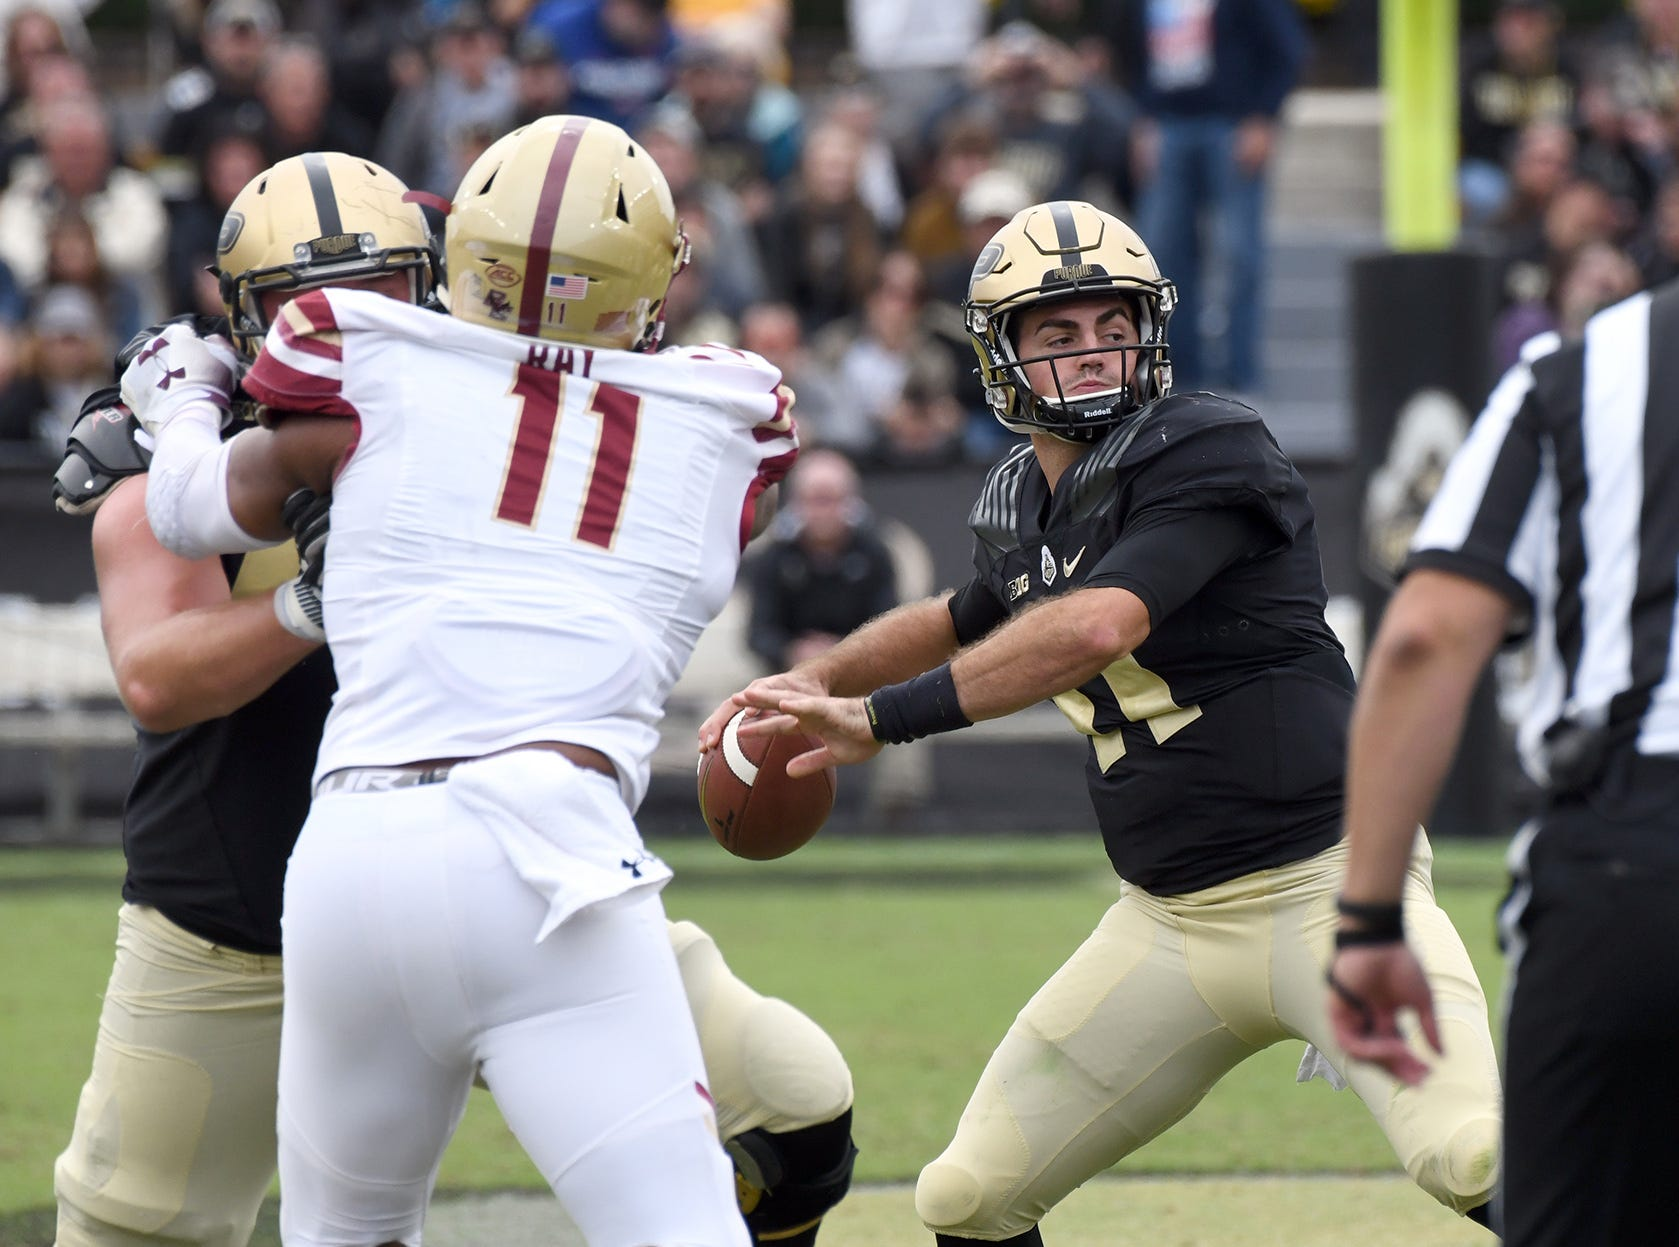 Purdue's David Blough in Purdue's 30-13 win in West Lafayette on Saturday September 22, 2018.